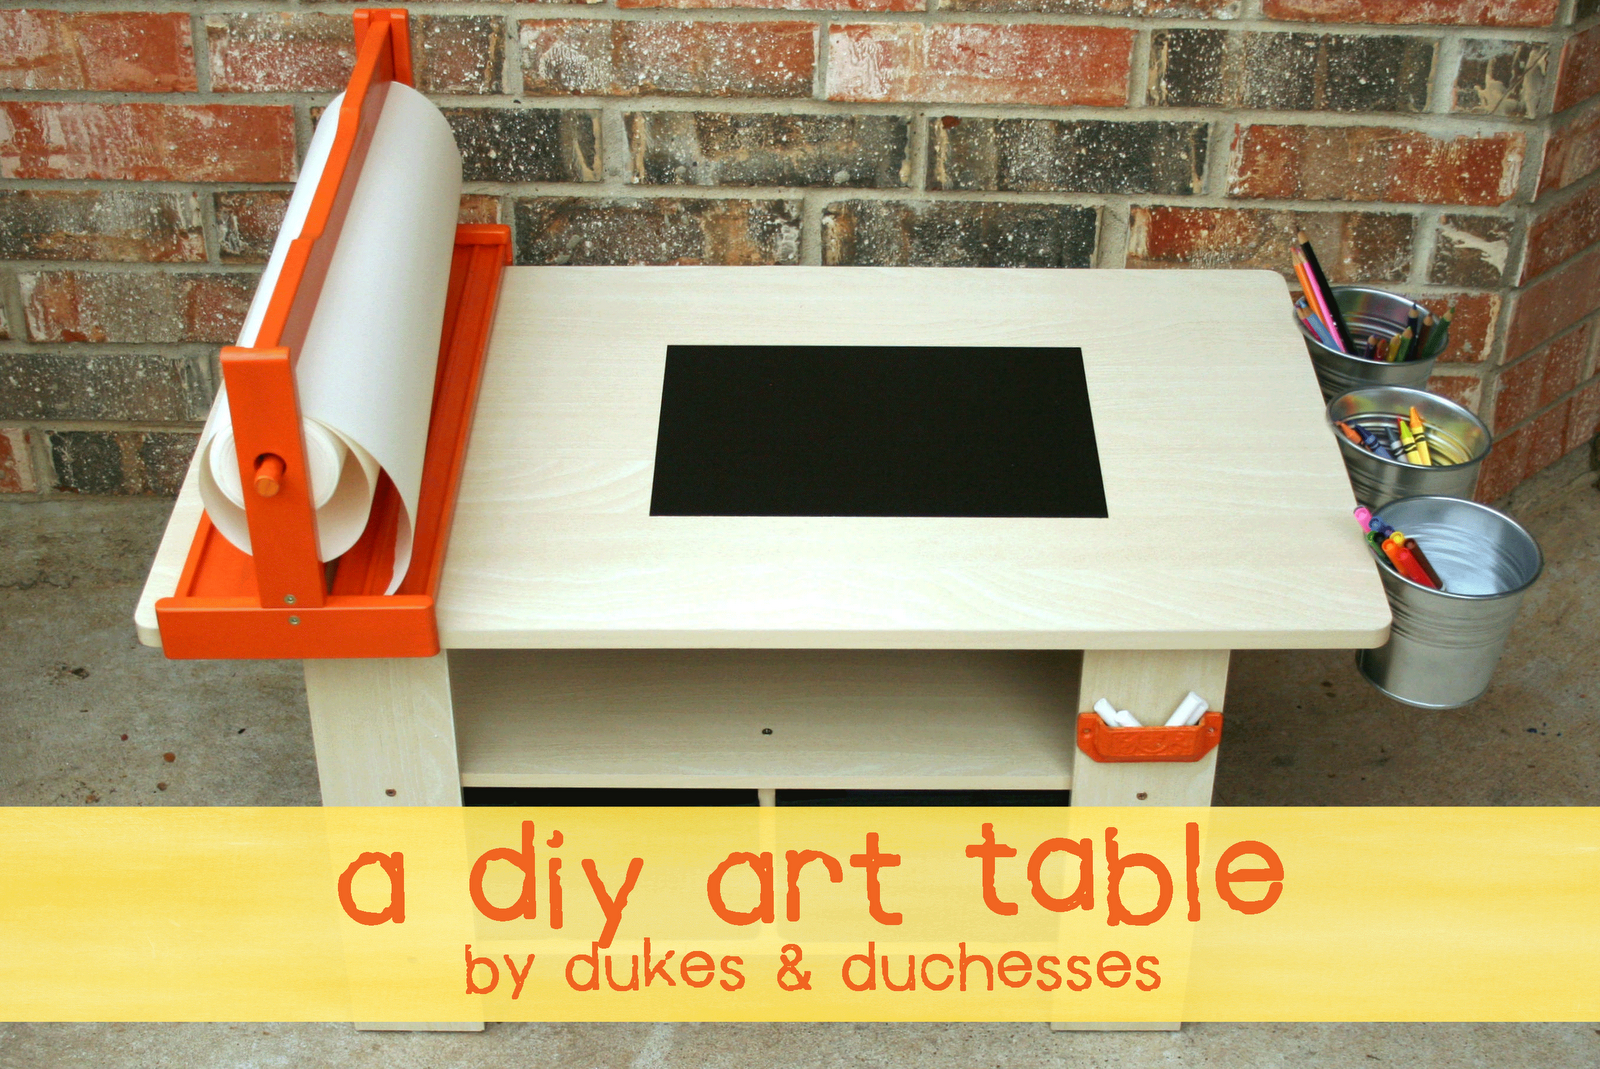 A Coffee Table Turned Into A Diy Art Table From Dukesandduchesses Com Art Table Diy Kids Art Kids Art Table